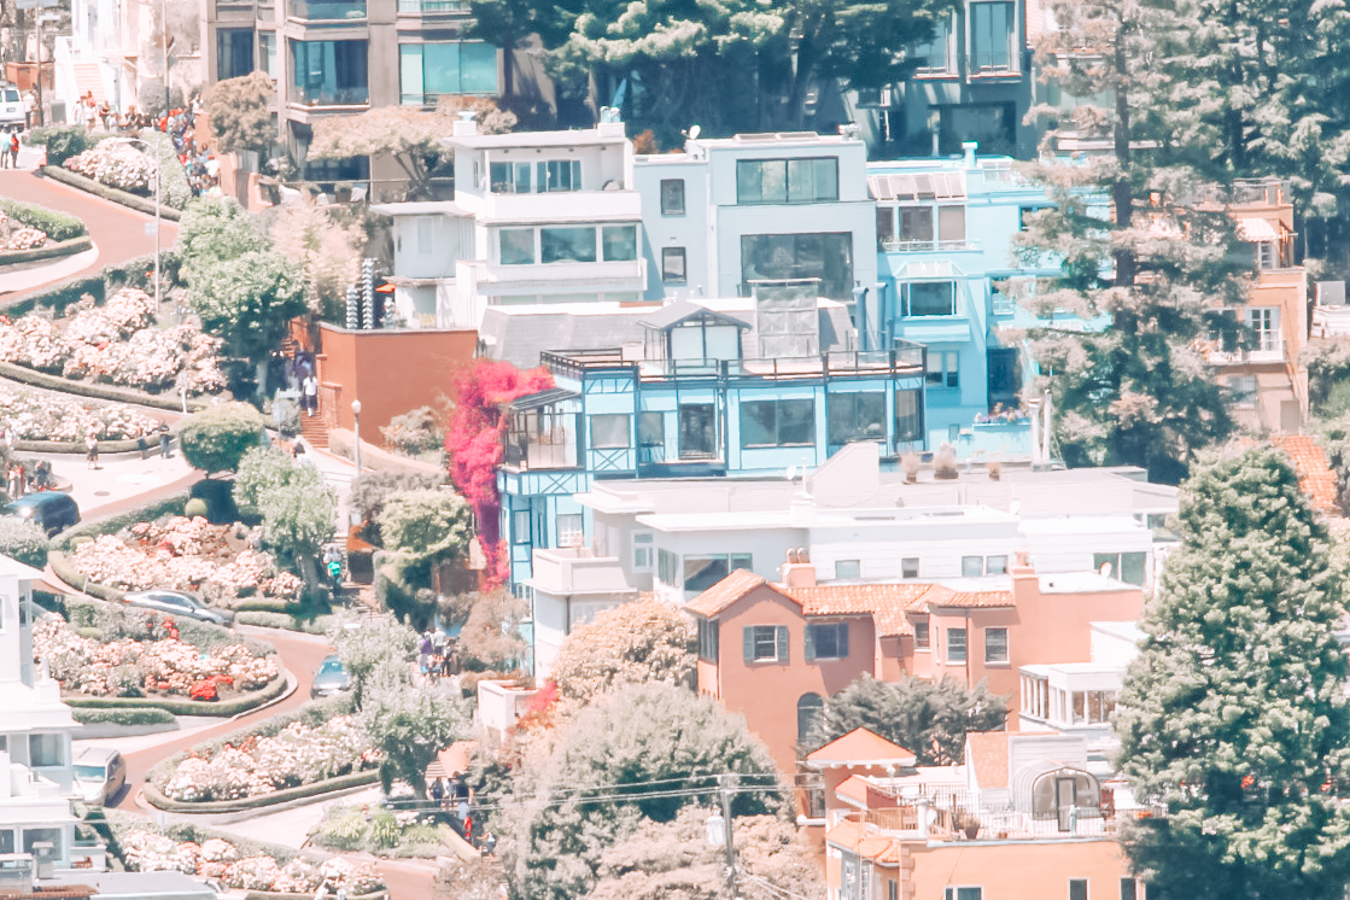 Instagrammable houses in San Francisco